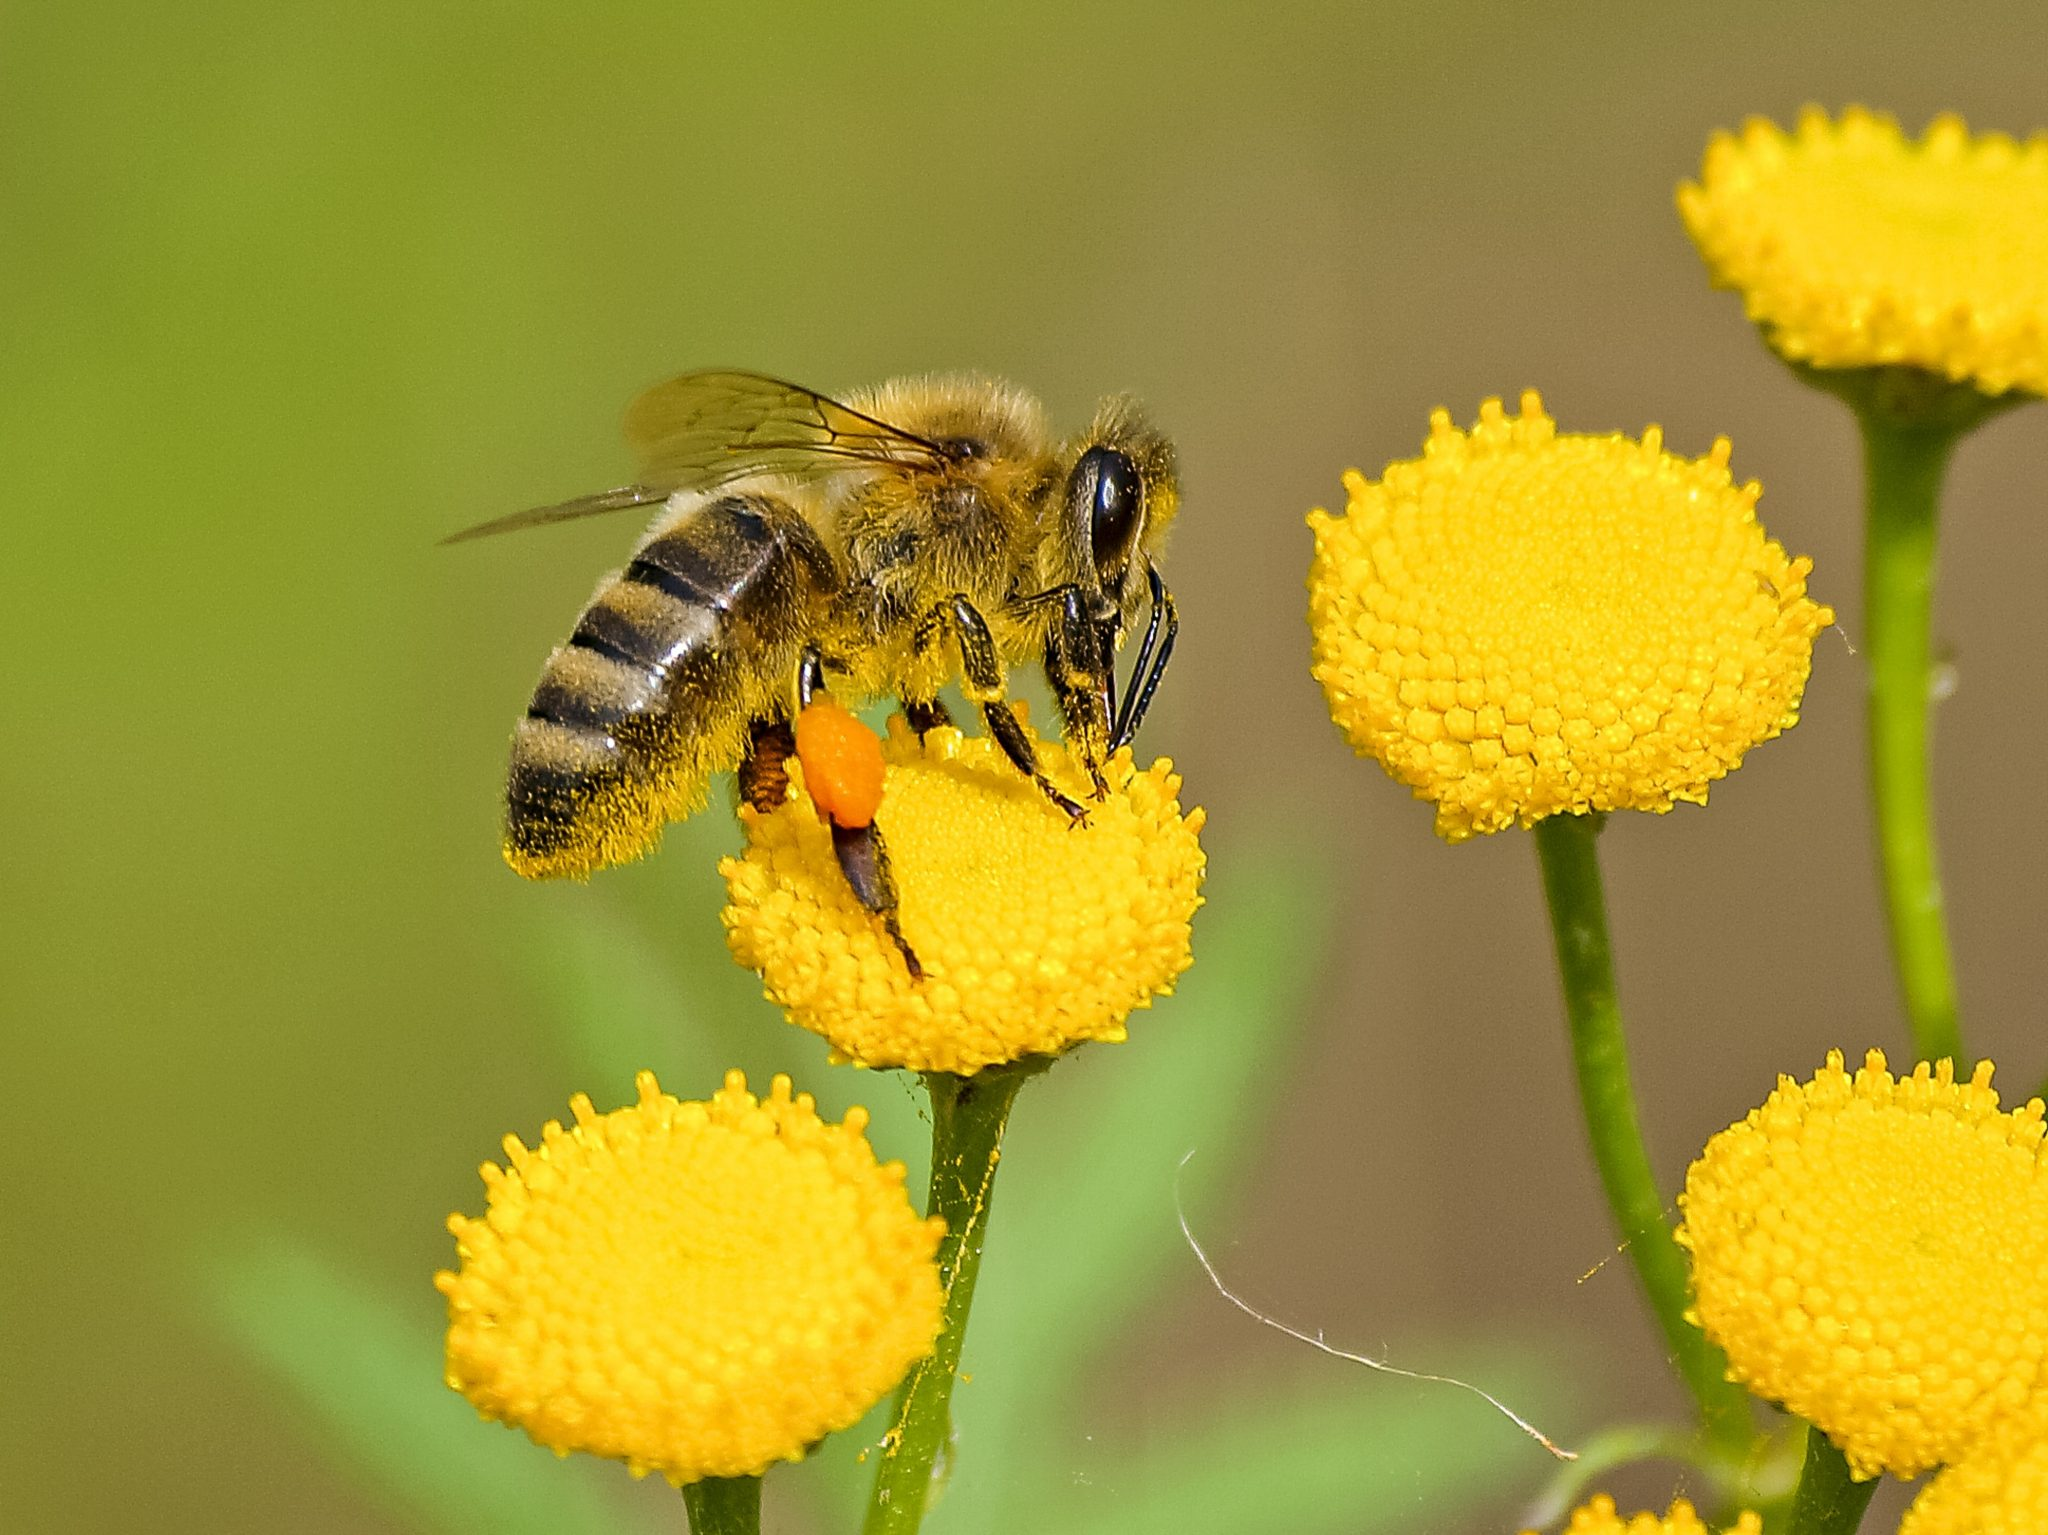 Learn why bees and the pollination process is so important!